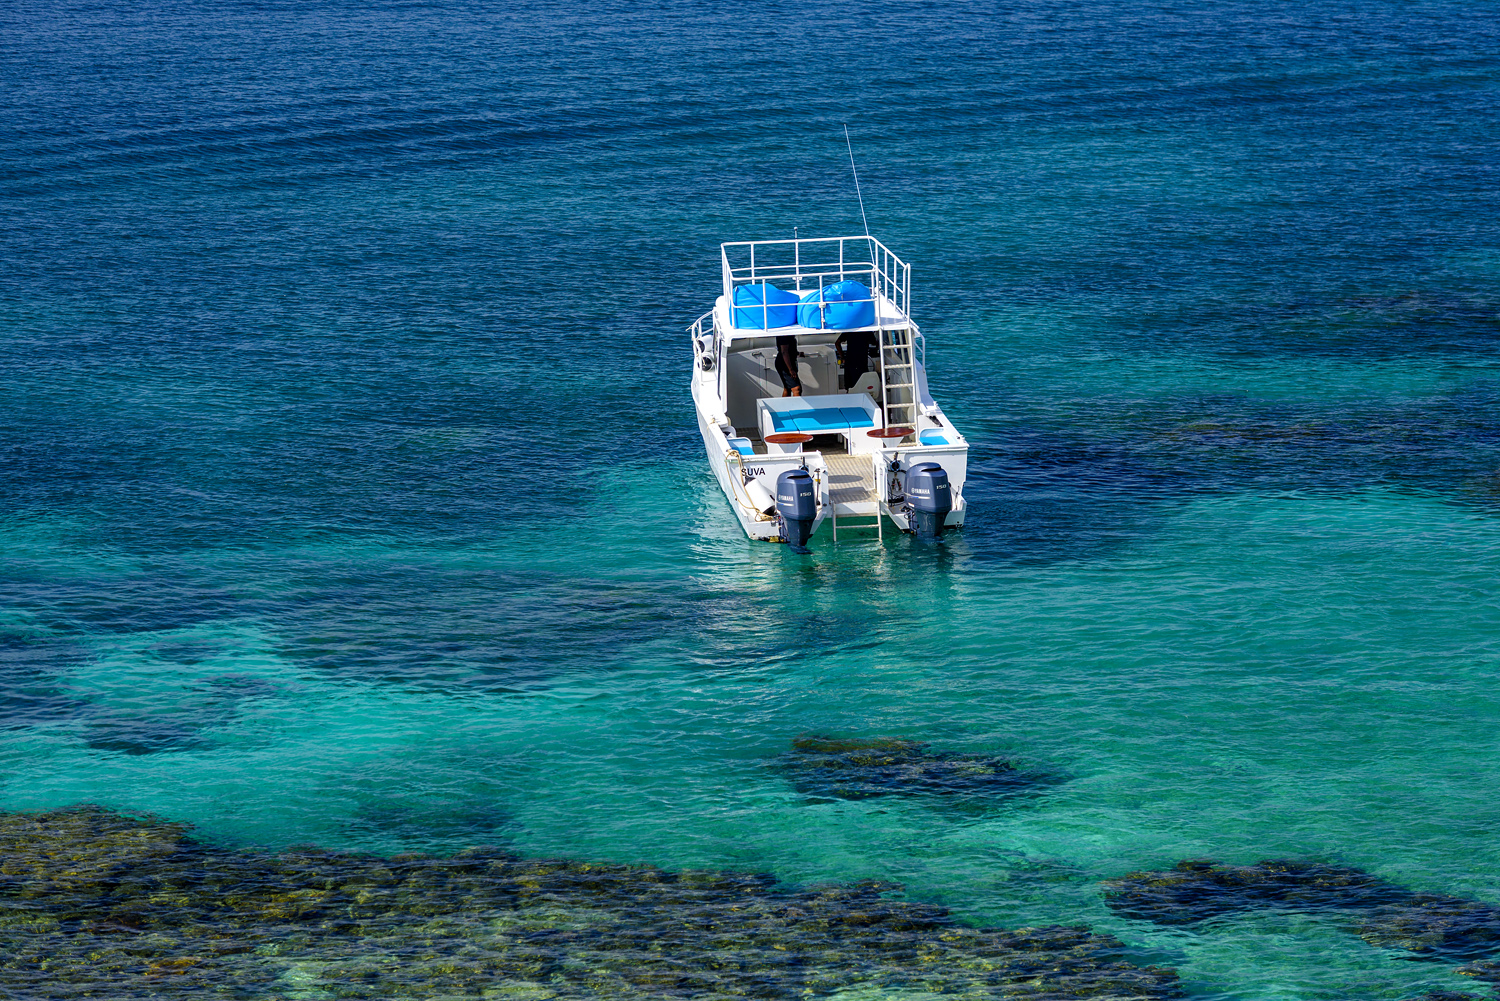 Fiji Resort - Remote 2.0 Boat on the Rainbow Reef, Vanua Levu for Fiji's best diving and snorkelling